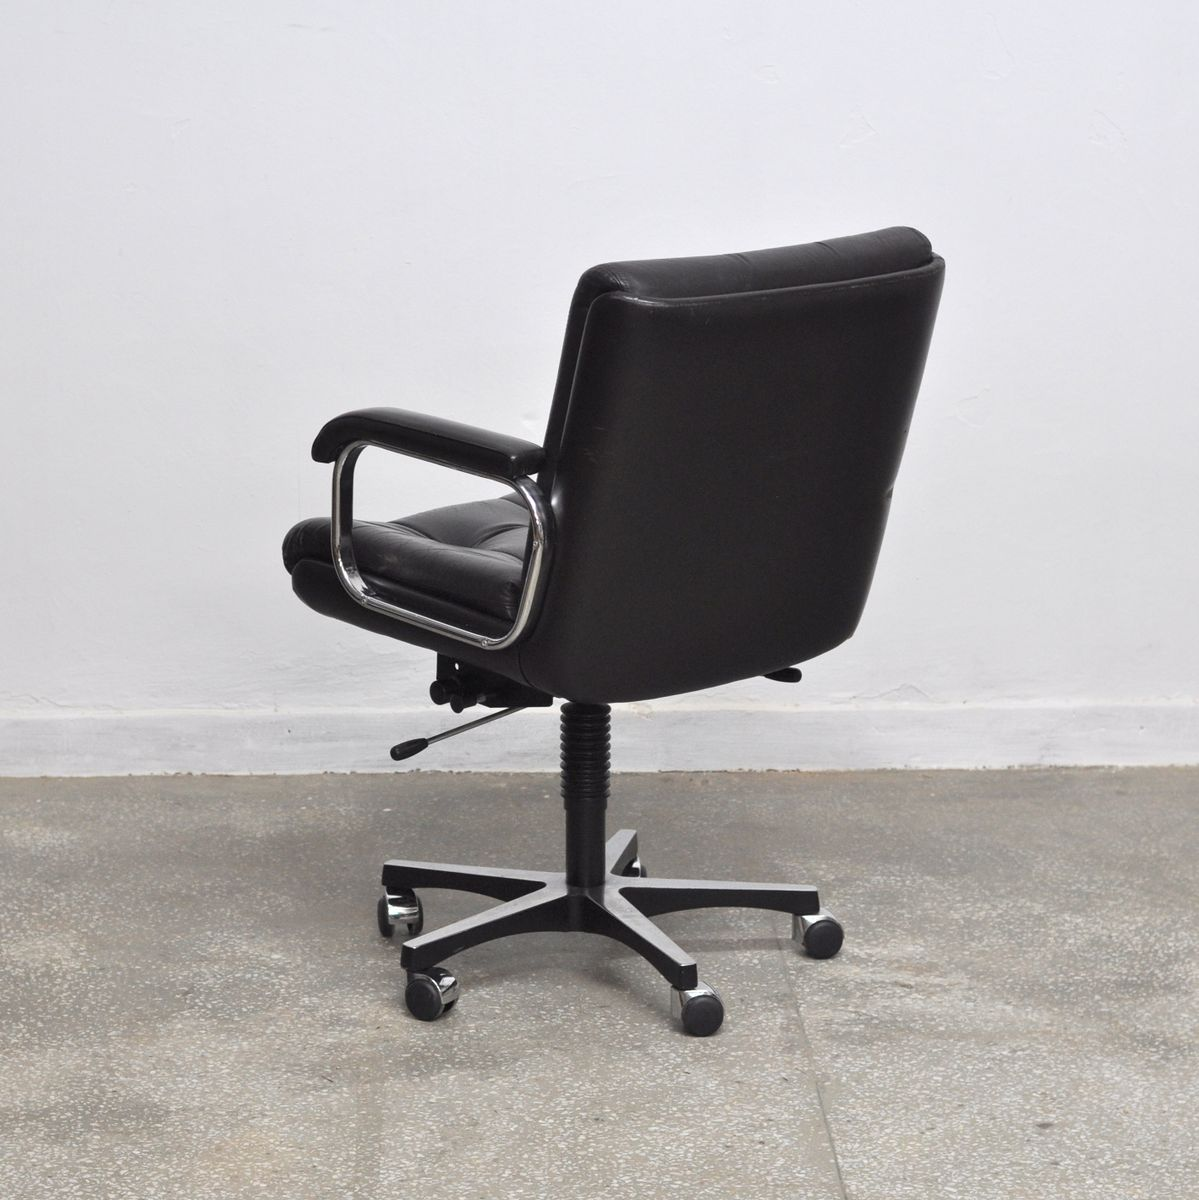 norwegian vintage office chair. Vintage Norwegian Office Chair From Ring Mekanikk 9. Price: $2,351.00 Regular $2,609.00 A